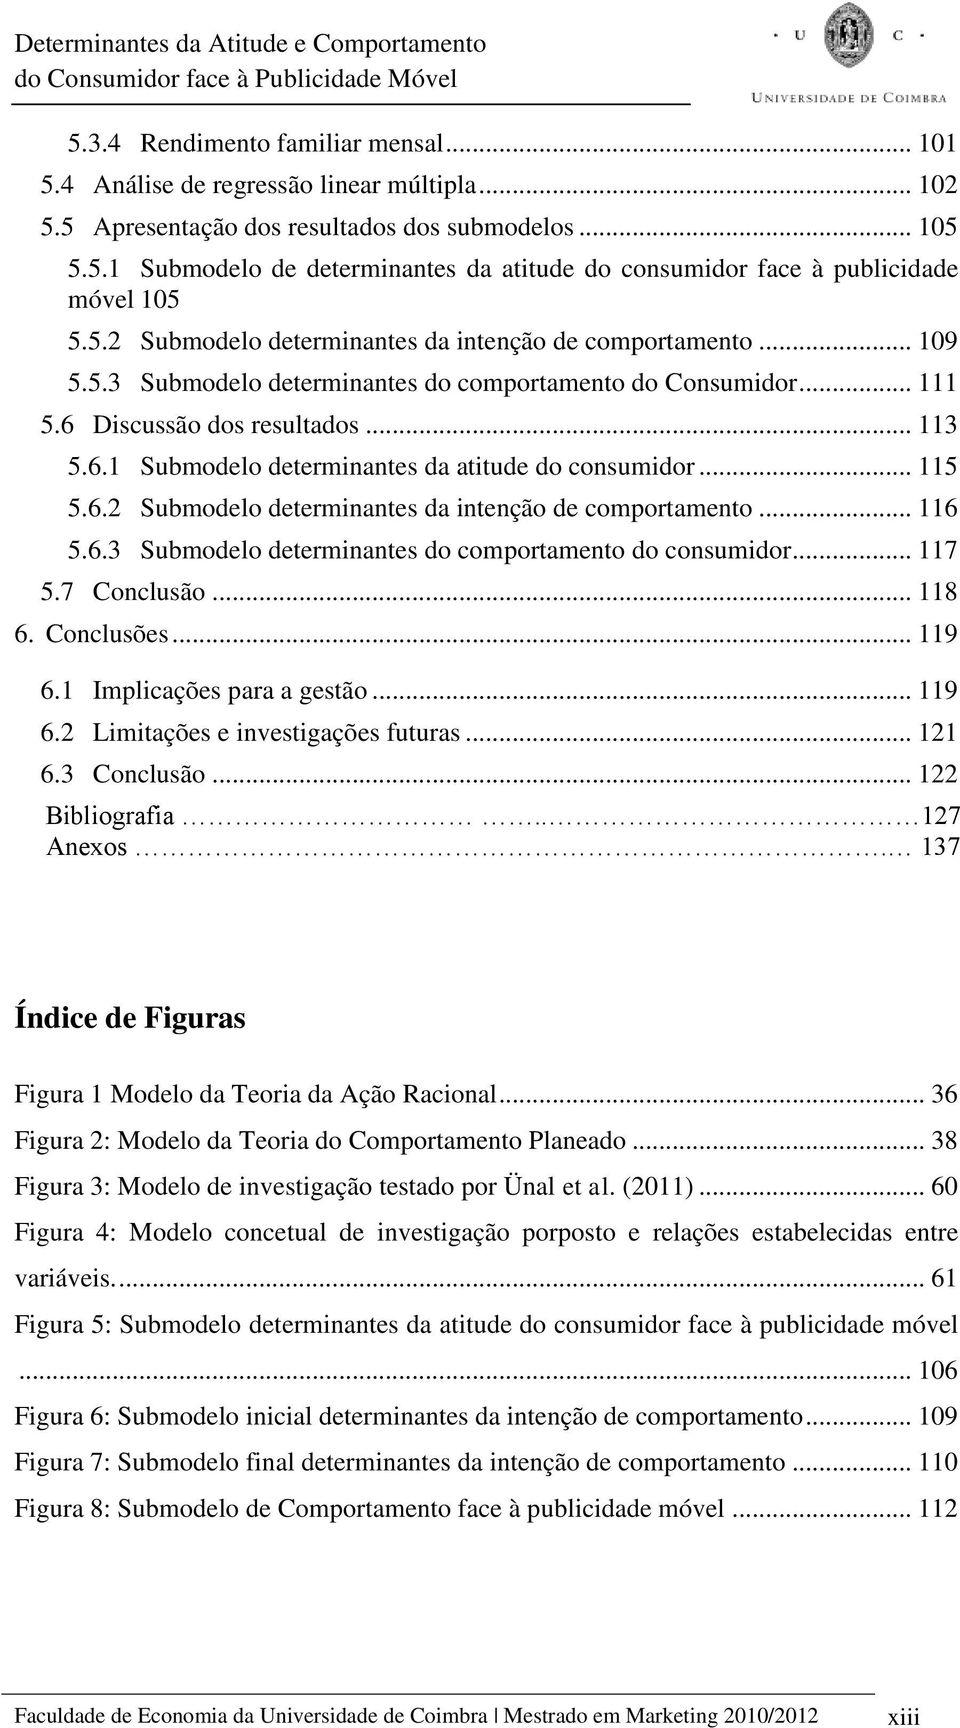 .. 115 5.6.2 Submodelo determinantes da intenção de comportamento... 116 5.6.3 Submodelo determinantes do comportamento do consumidor... 117 5.7 Conclusão... 118 6. Conclusões... 119 6.